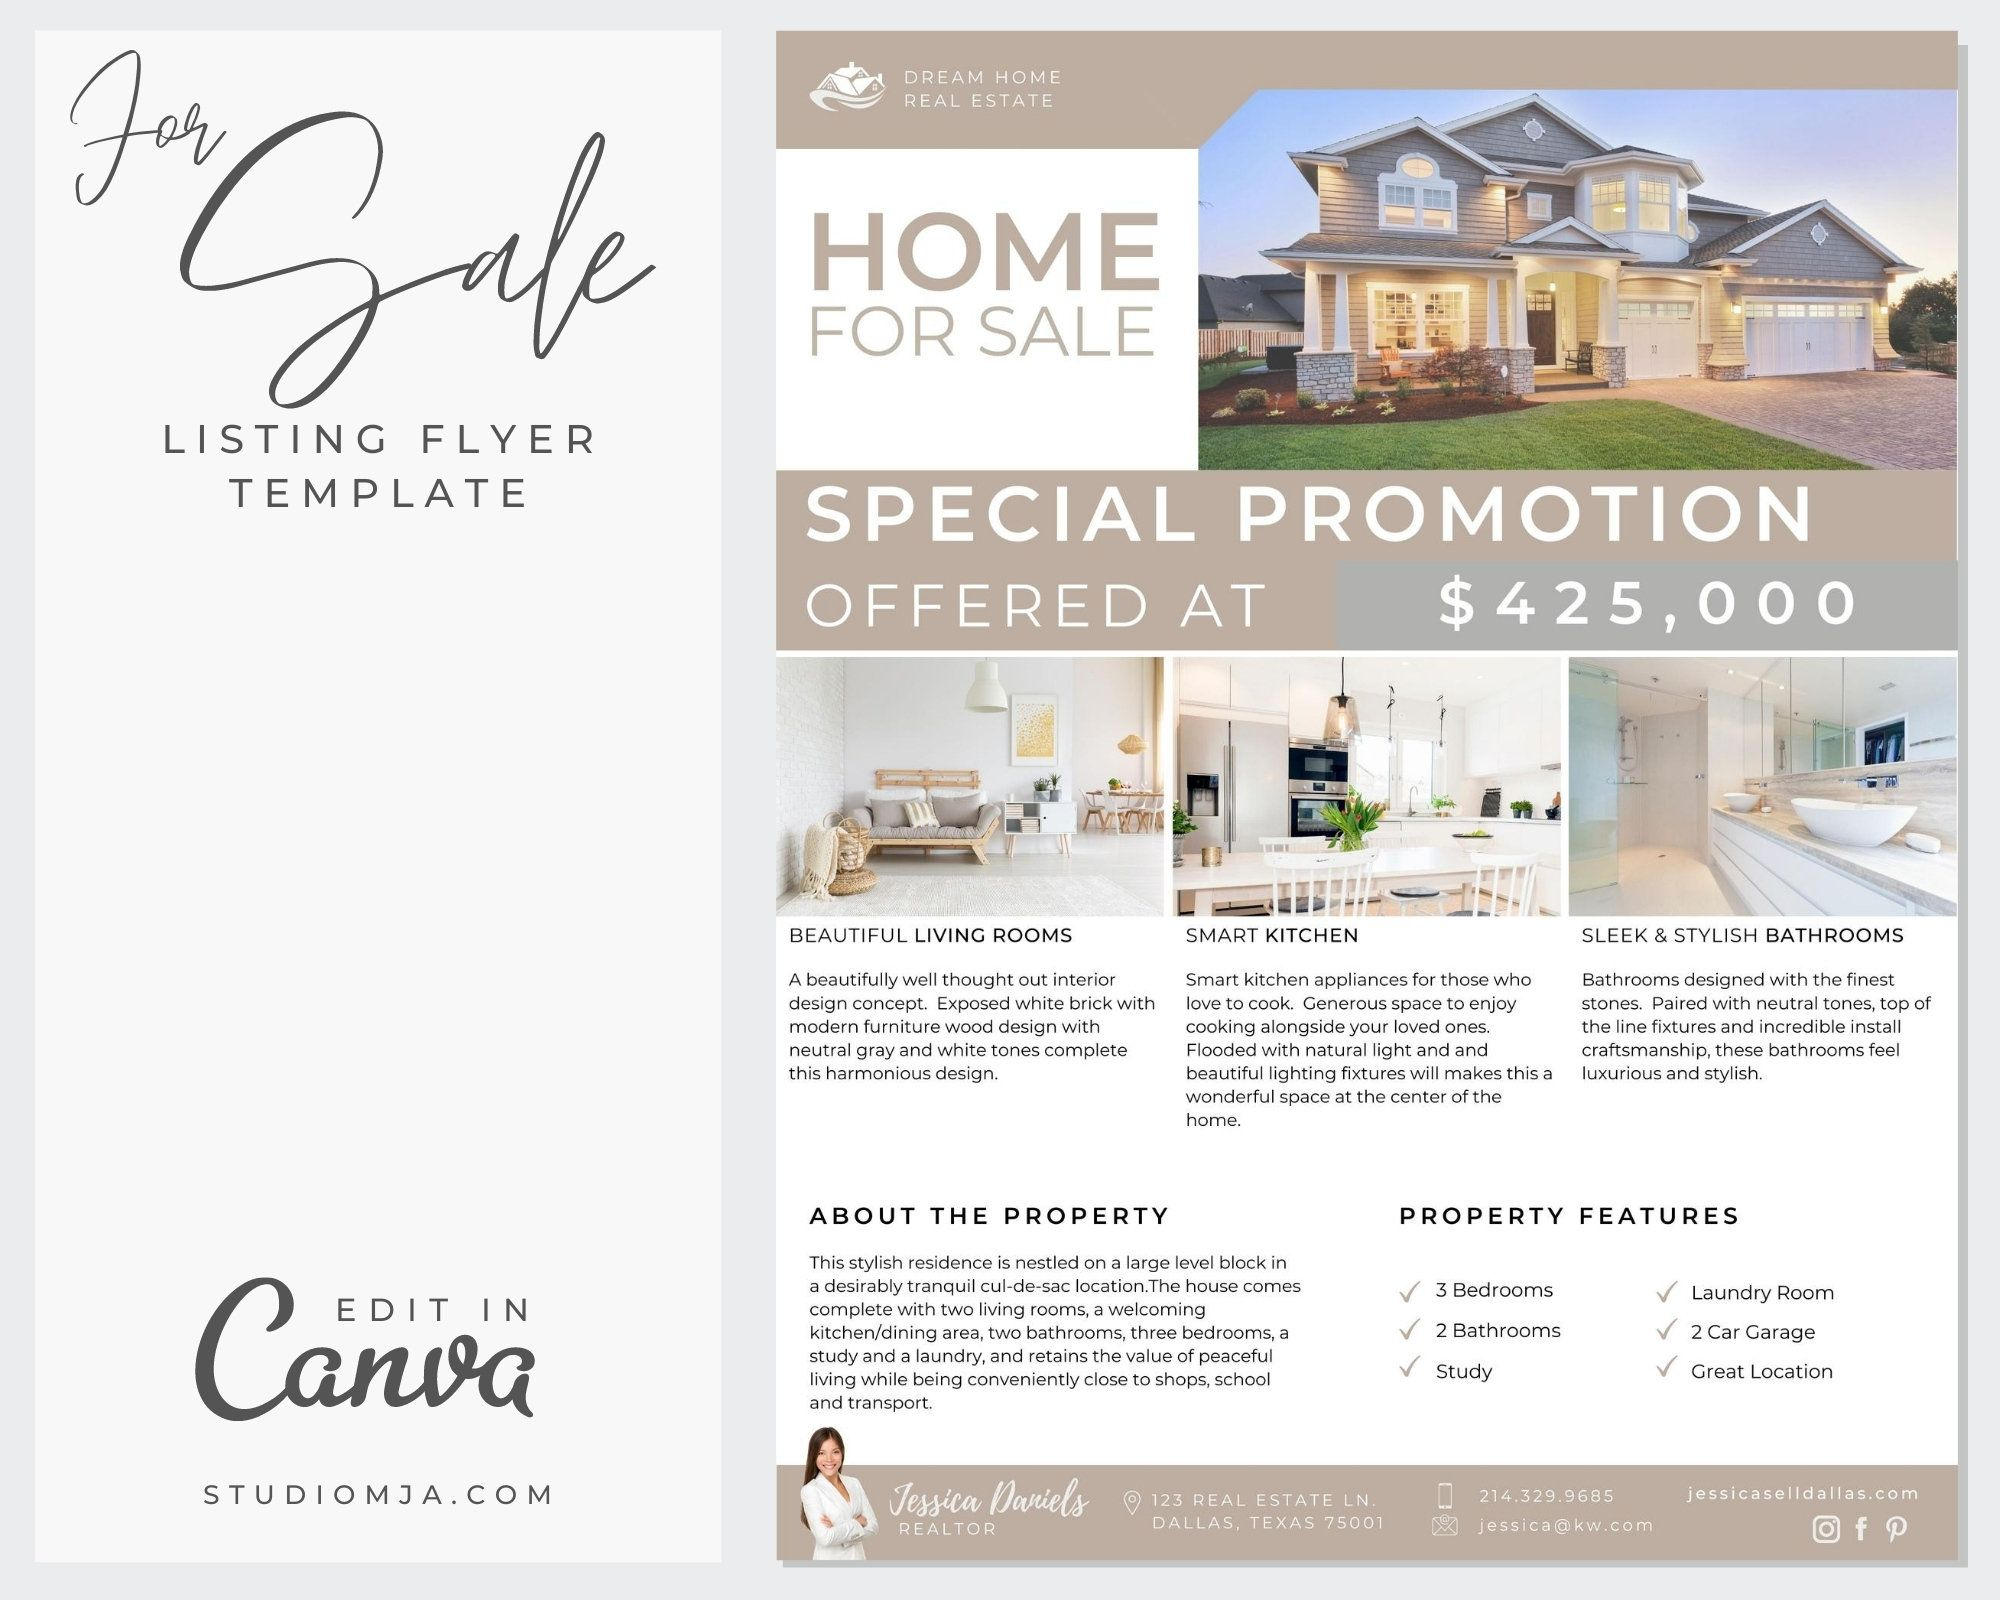 Real Estate Flyer Template Canva Template Real Estate Etsy Real Estate Flyer Template Real Estate Flyer Real Estate Marketing Flyers